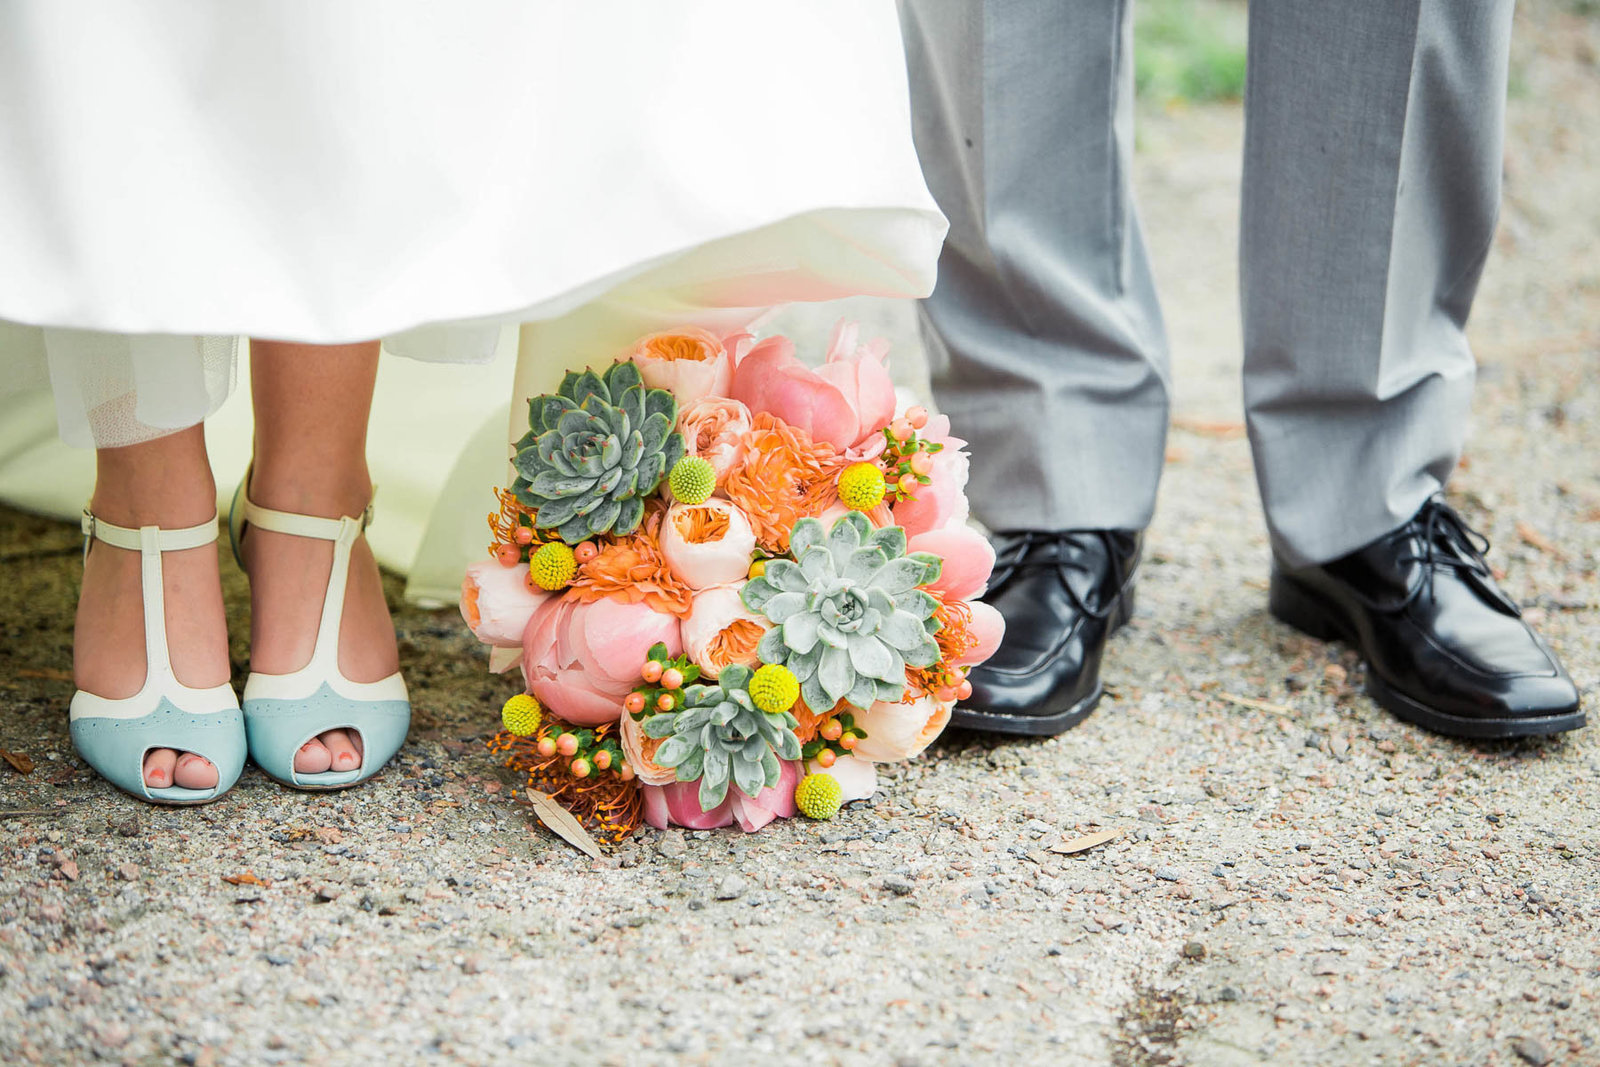 Bouquet is set between bride and groom's shoes, I'on Creek Club, Mt Pleasant, South Carolina